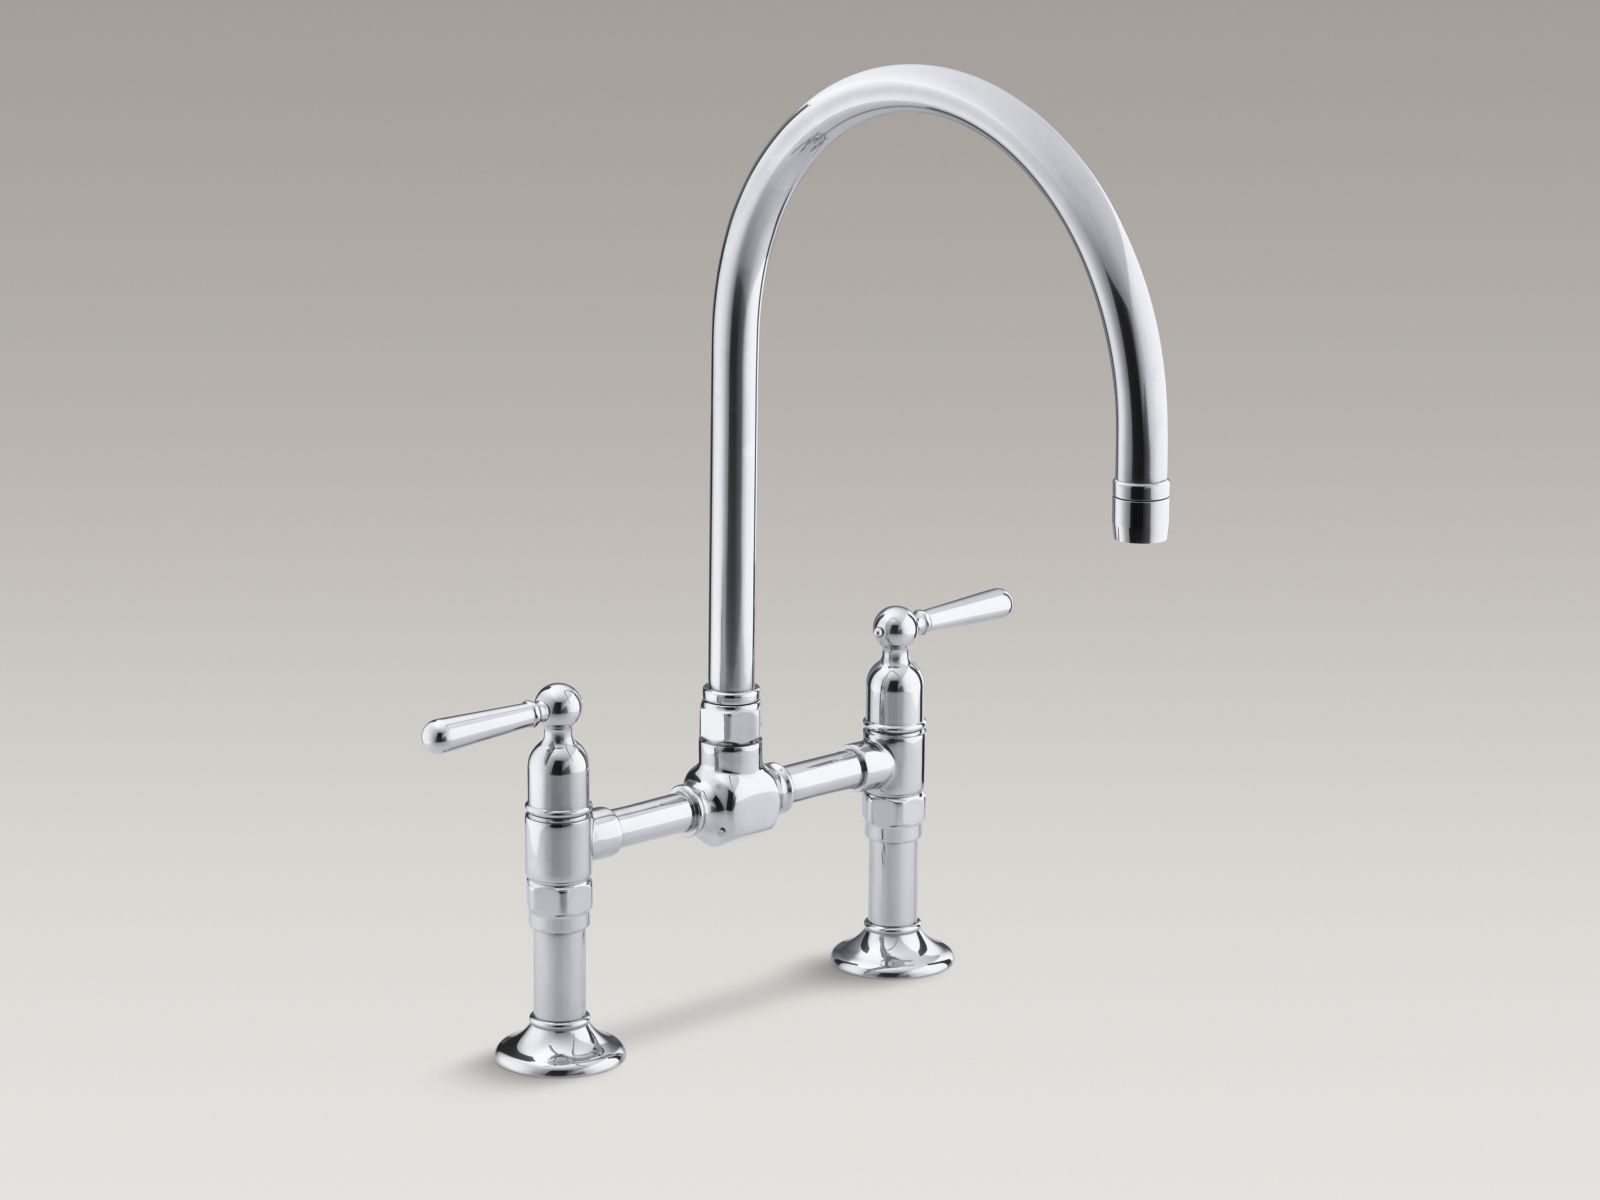 Kohler HiRise Two Hole Deck Mount Bridge Kitchen Faucet With Gooseneck  Spout And Lever Handles Polished Stainless ** You Will Find Great Deals At  Standard ...